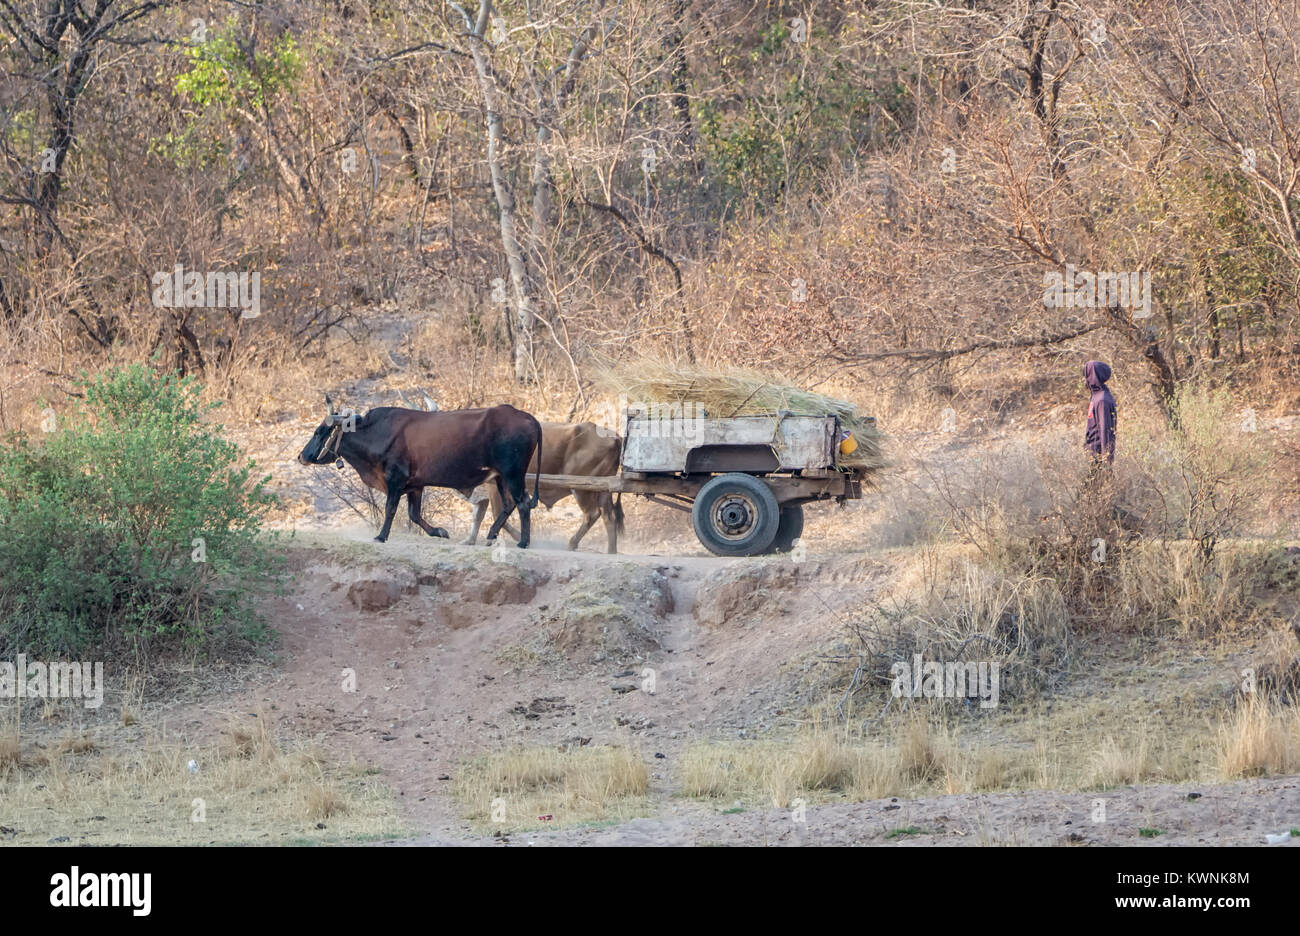 A working cow wagon in Angola - Stock Image